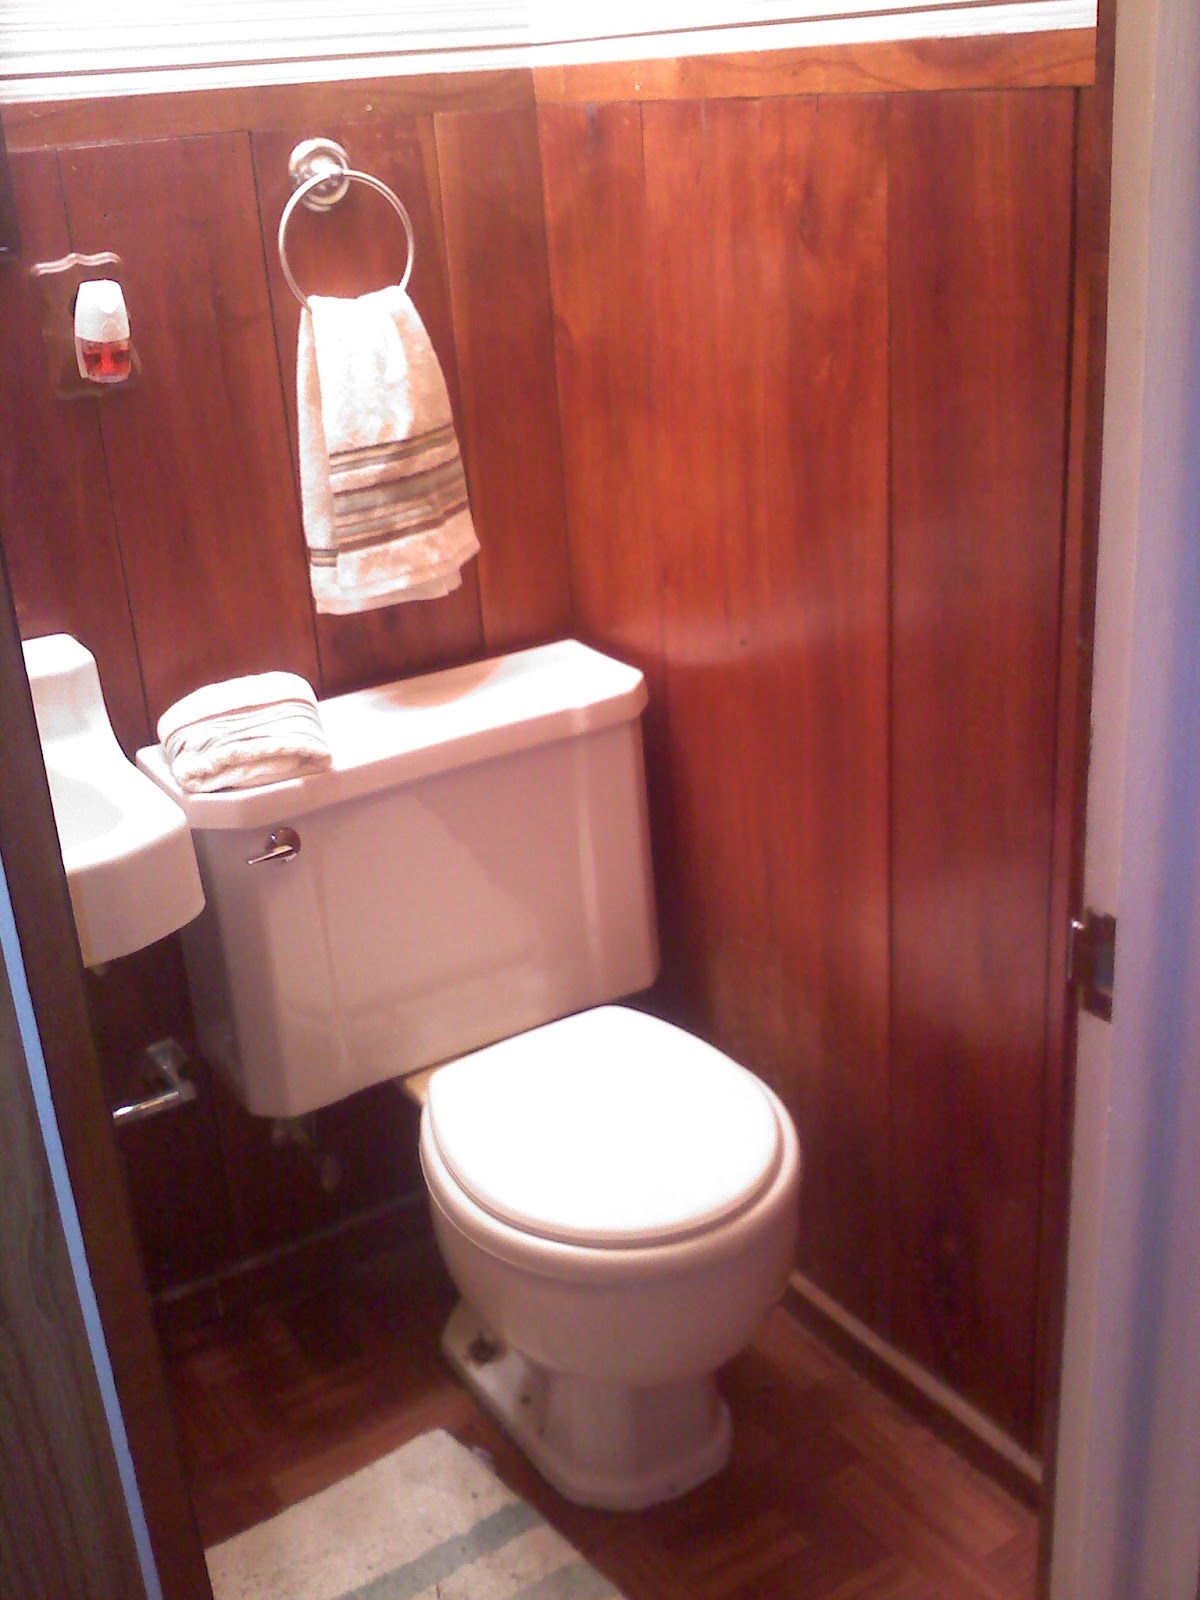 Bathroom Remodels Under $1000 the smart momma: half bathroom remodel for under $1000